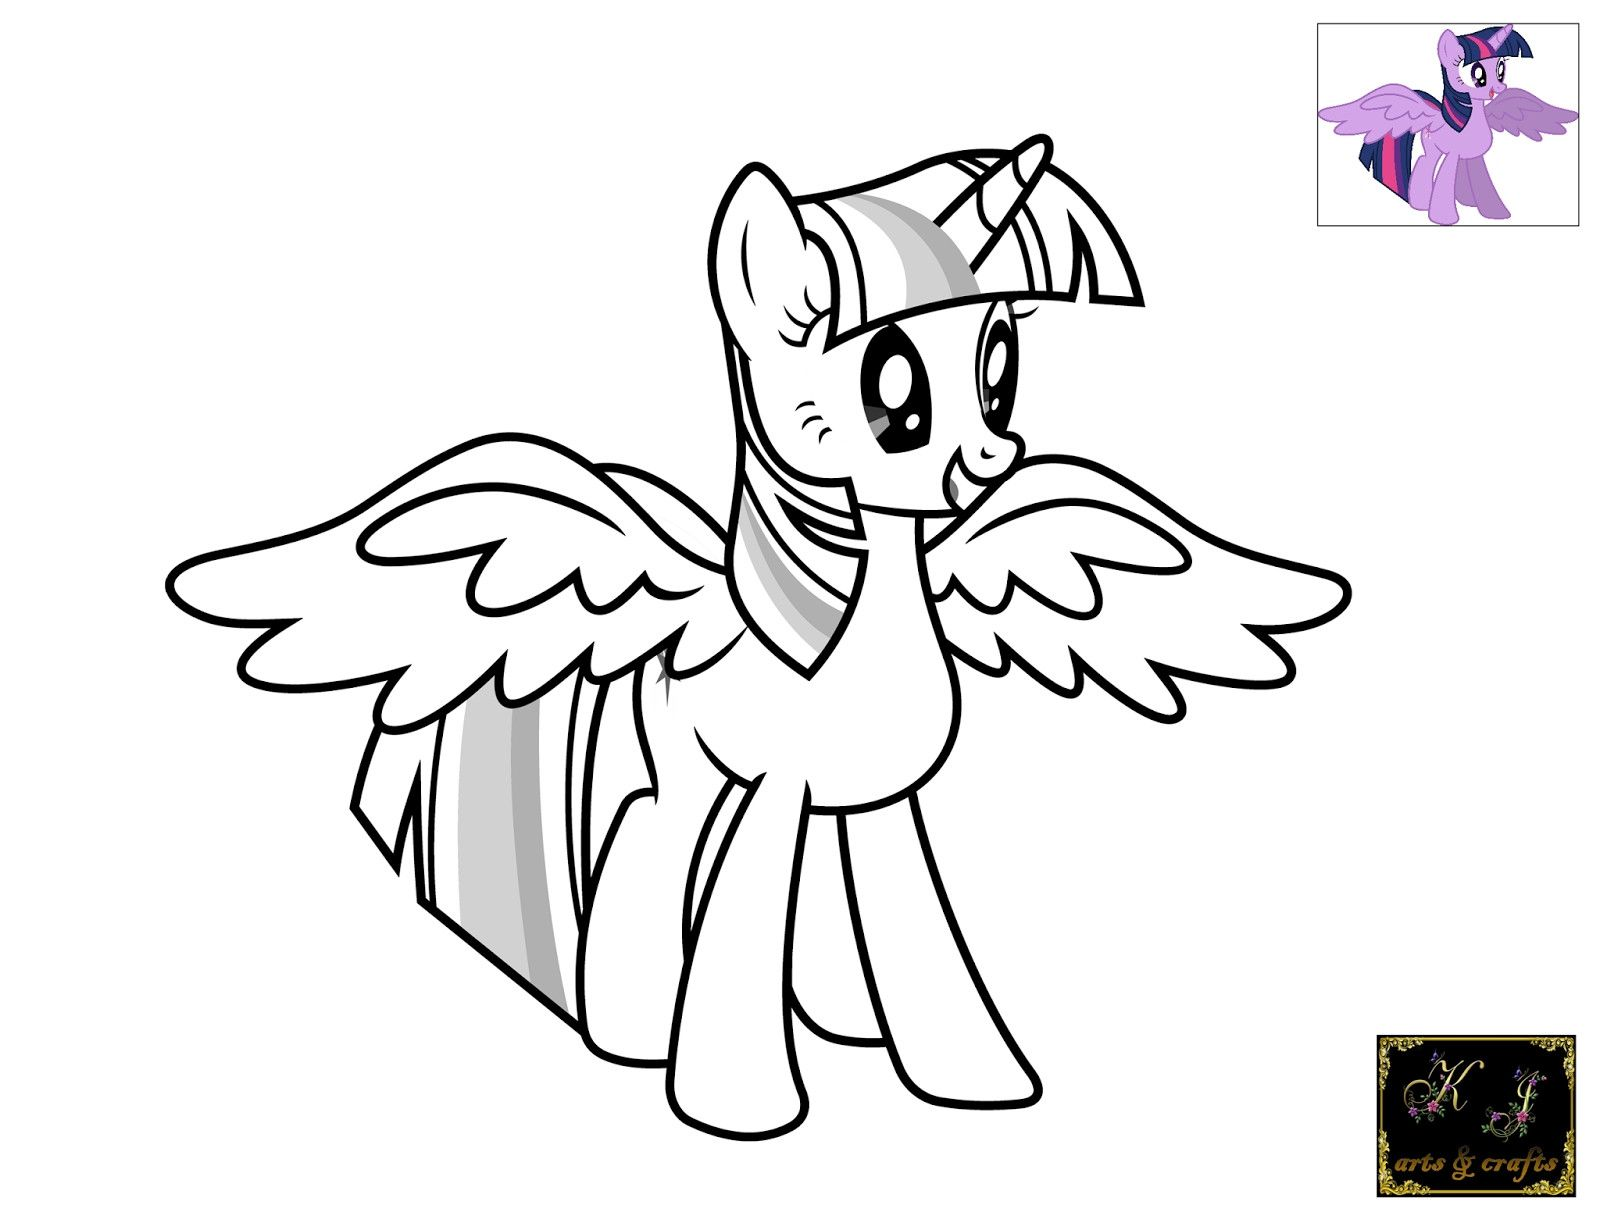 Print The Princess Twilight Sparkle Little Pony Coloring Pages And